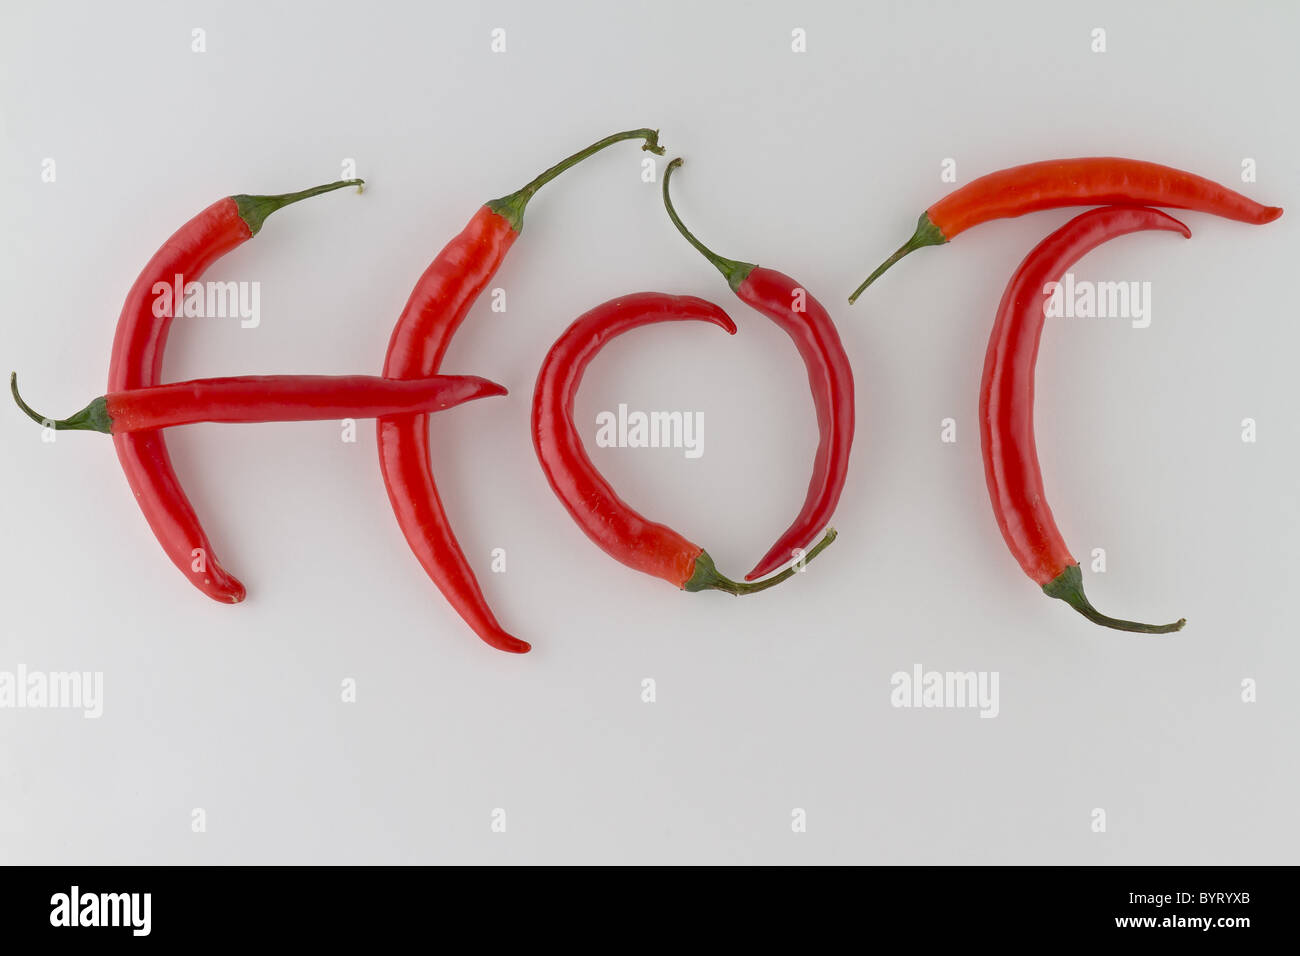 Red hot chili peppers arranged as the word HOT on white background - Stock Image